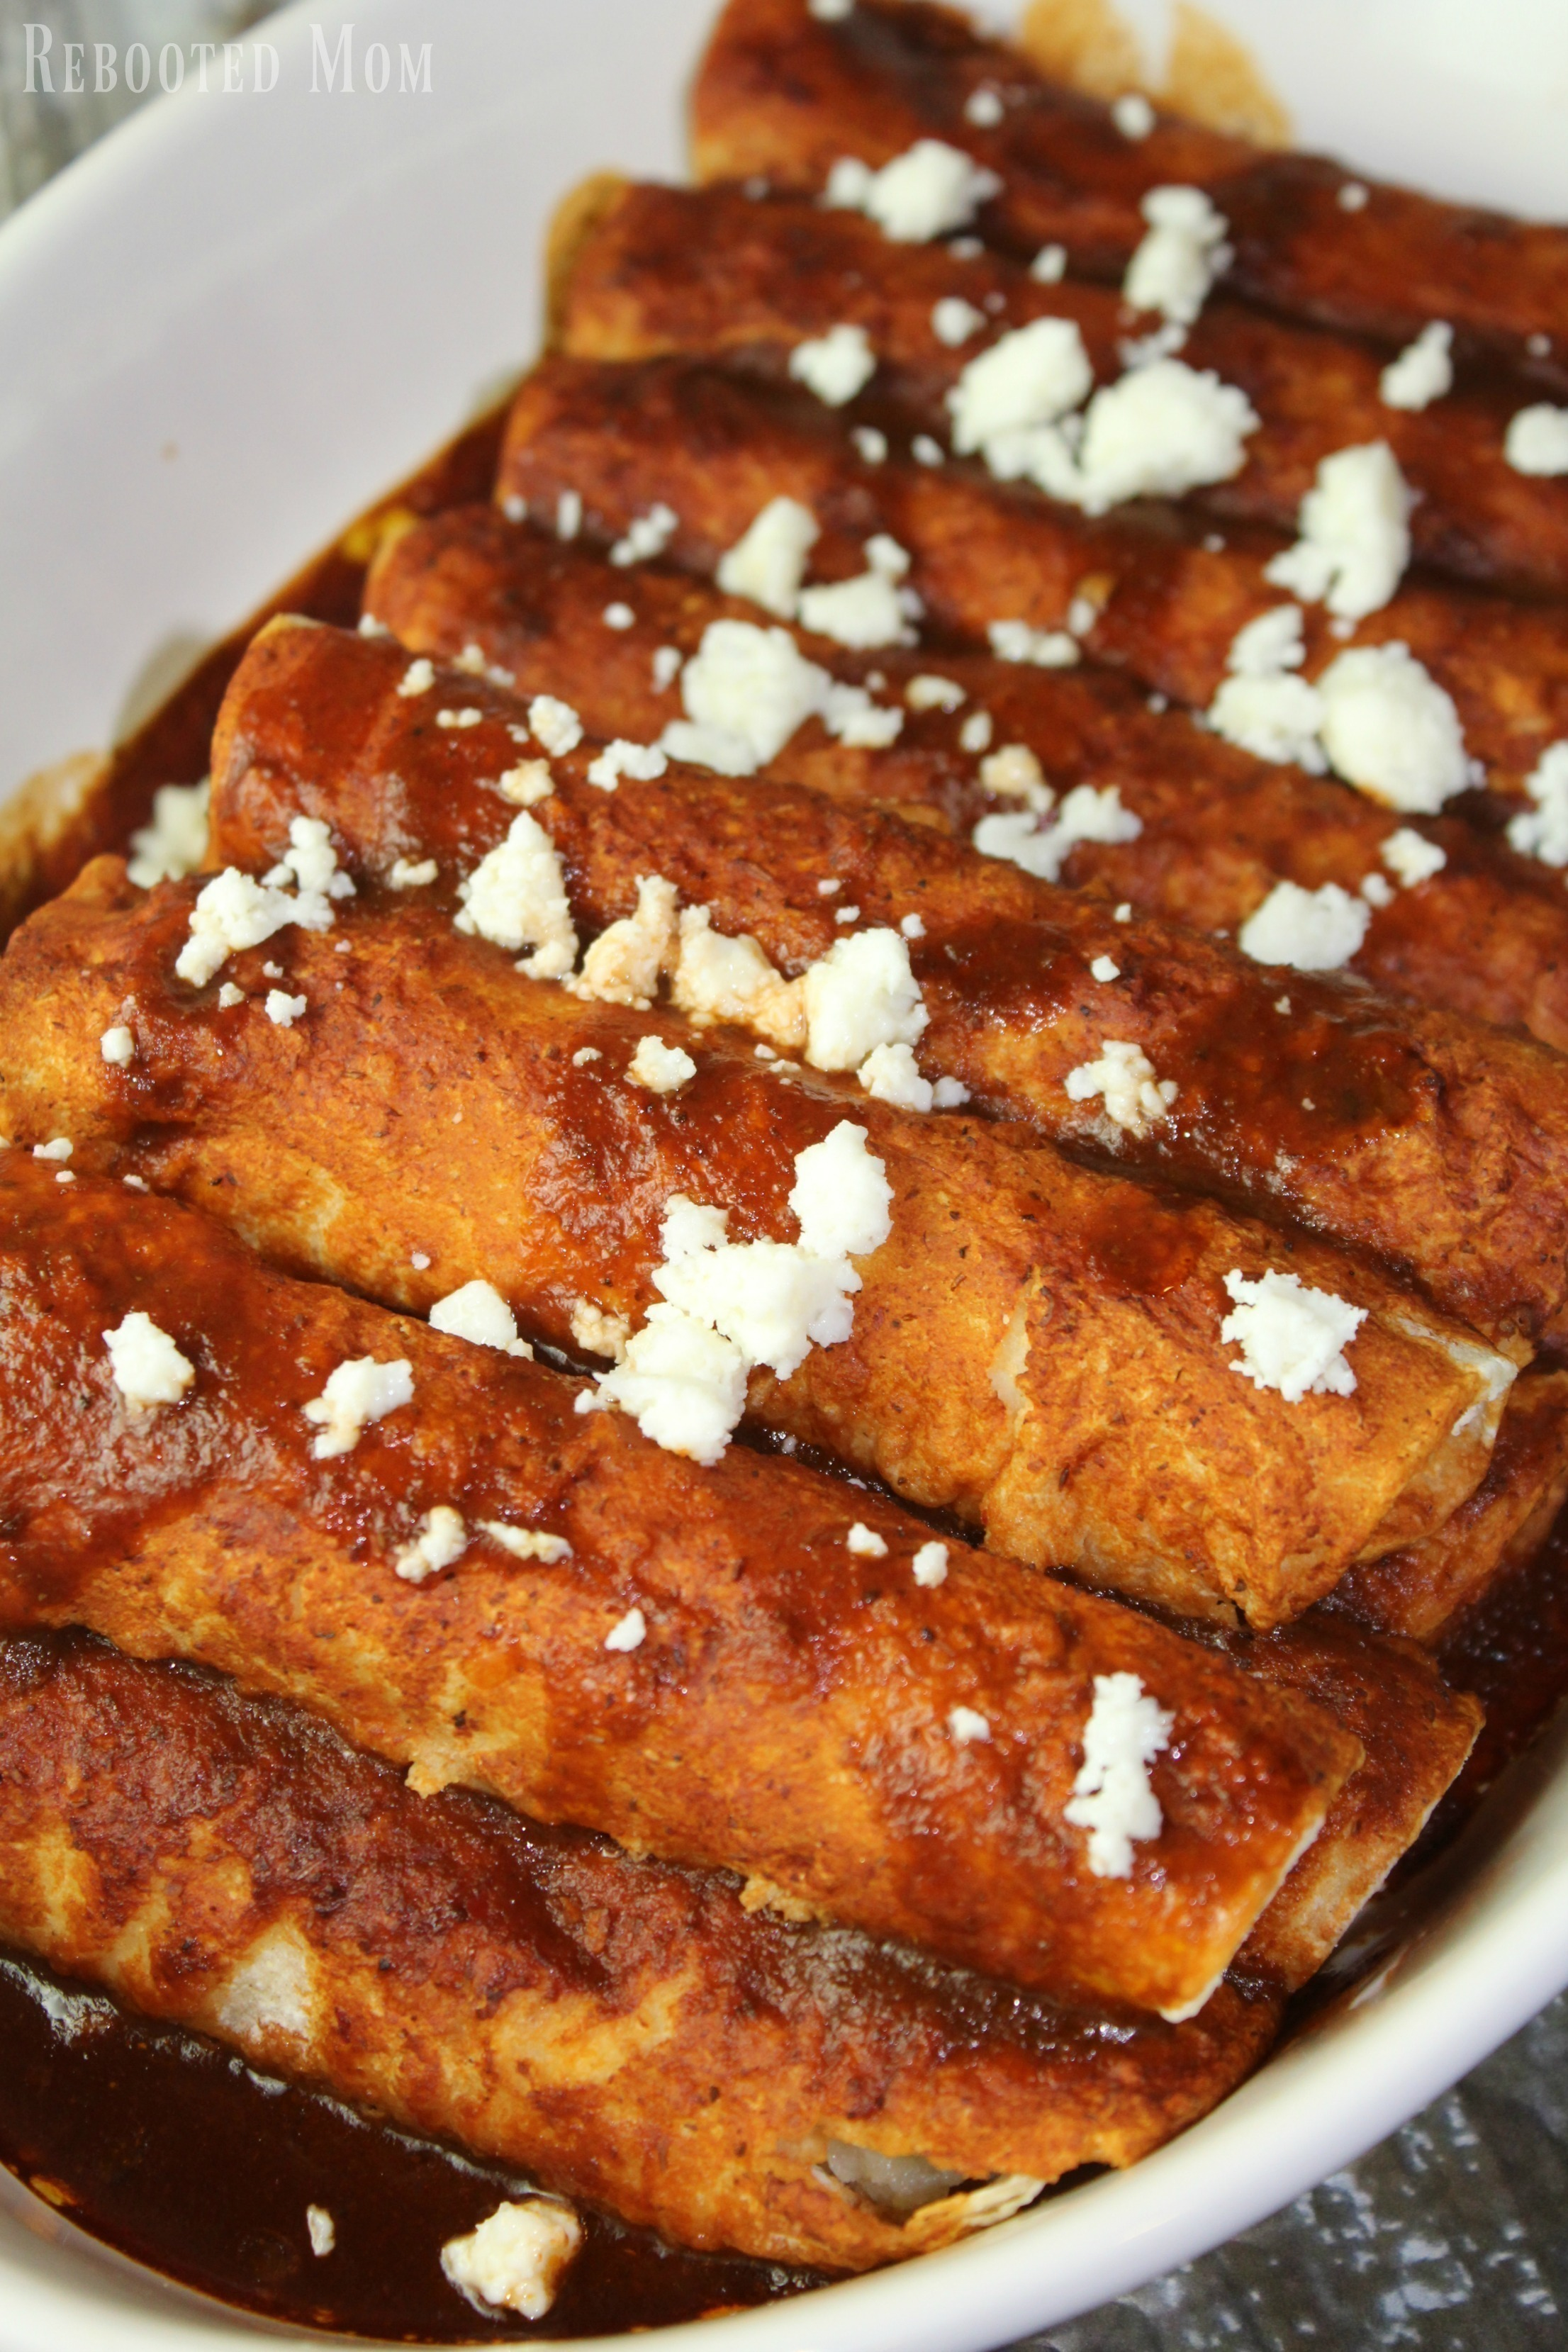 A delicious blend of guajillo chiles, onion, and spices in a thick, red sauce used as a base for these filling potato enchiladas.